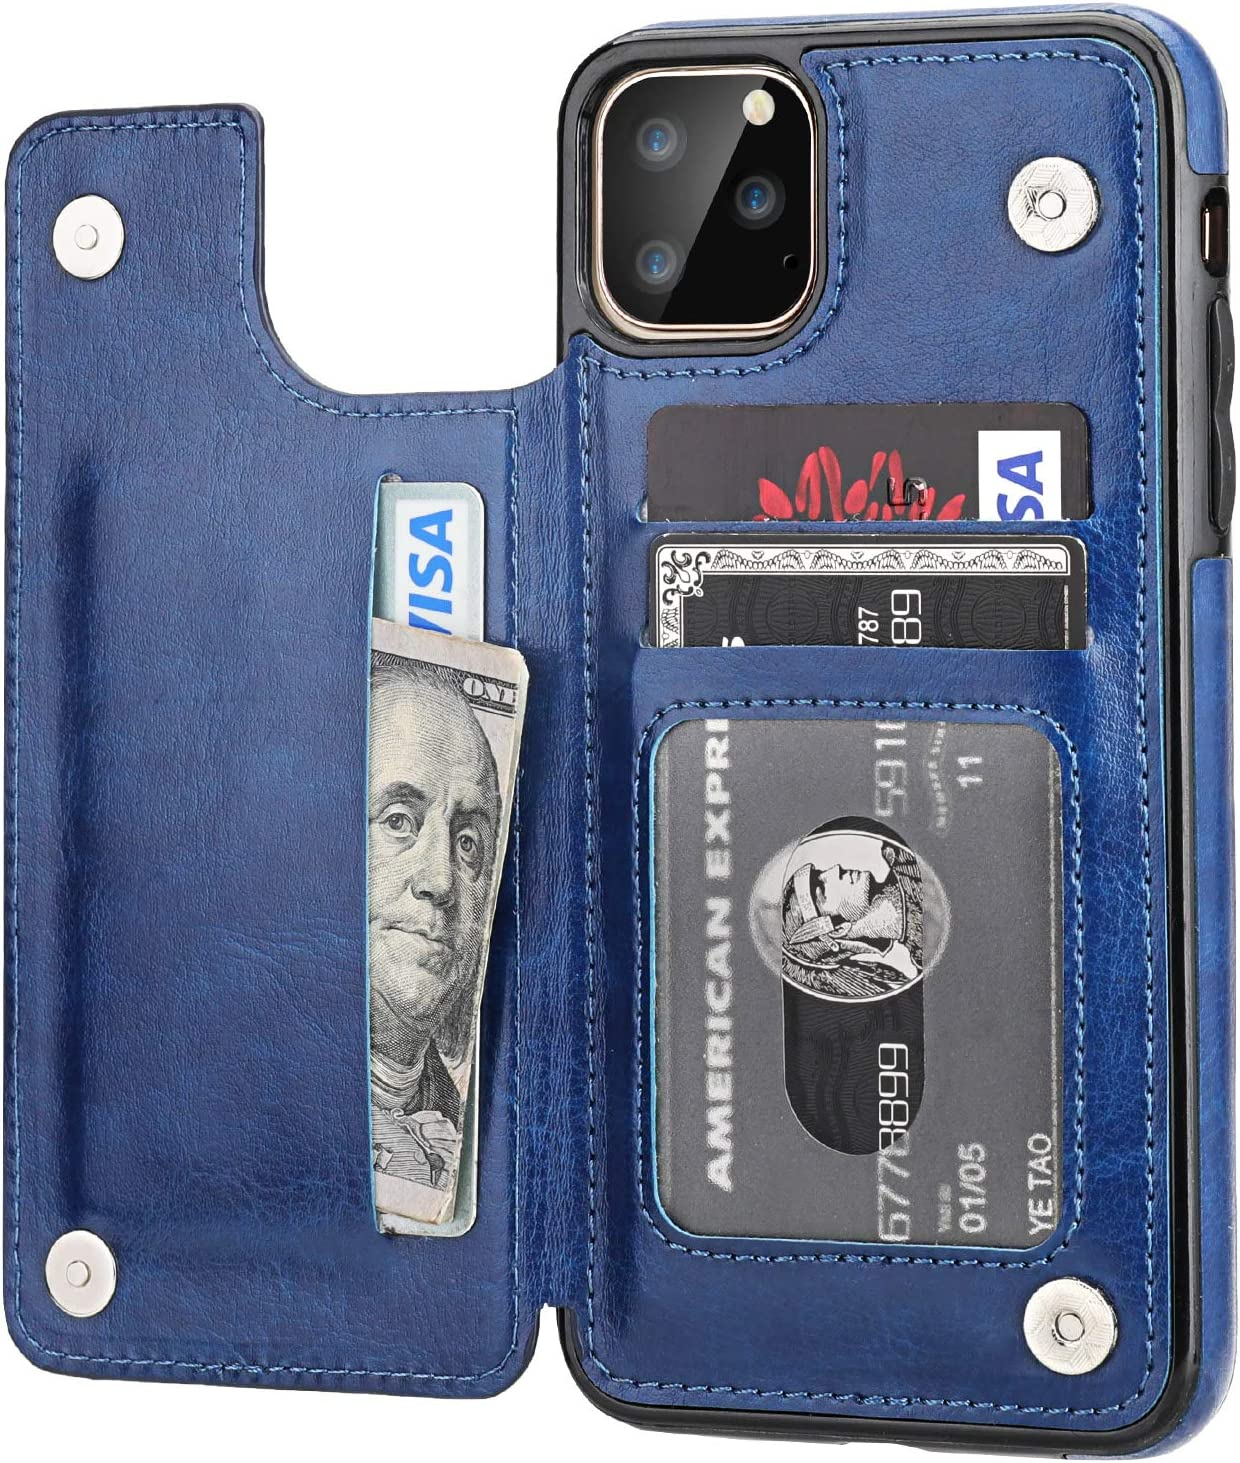 iPhone 11 Pro Max Wallet Case with Card Holder,OT ONETOP PU Leather Kickstand Card Slots Case,Double Magnetic Clasp and Durable Shockproof Cover for iPhone 11 Pro Max 6.5 Inch(Blue)